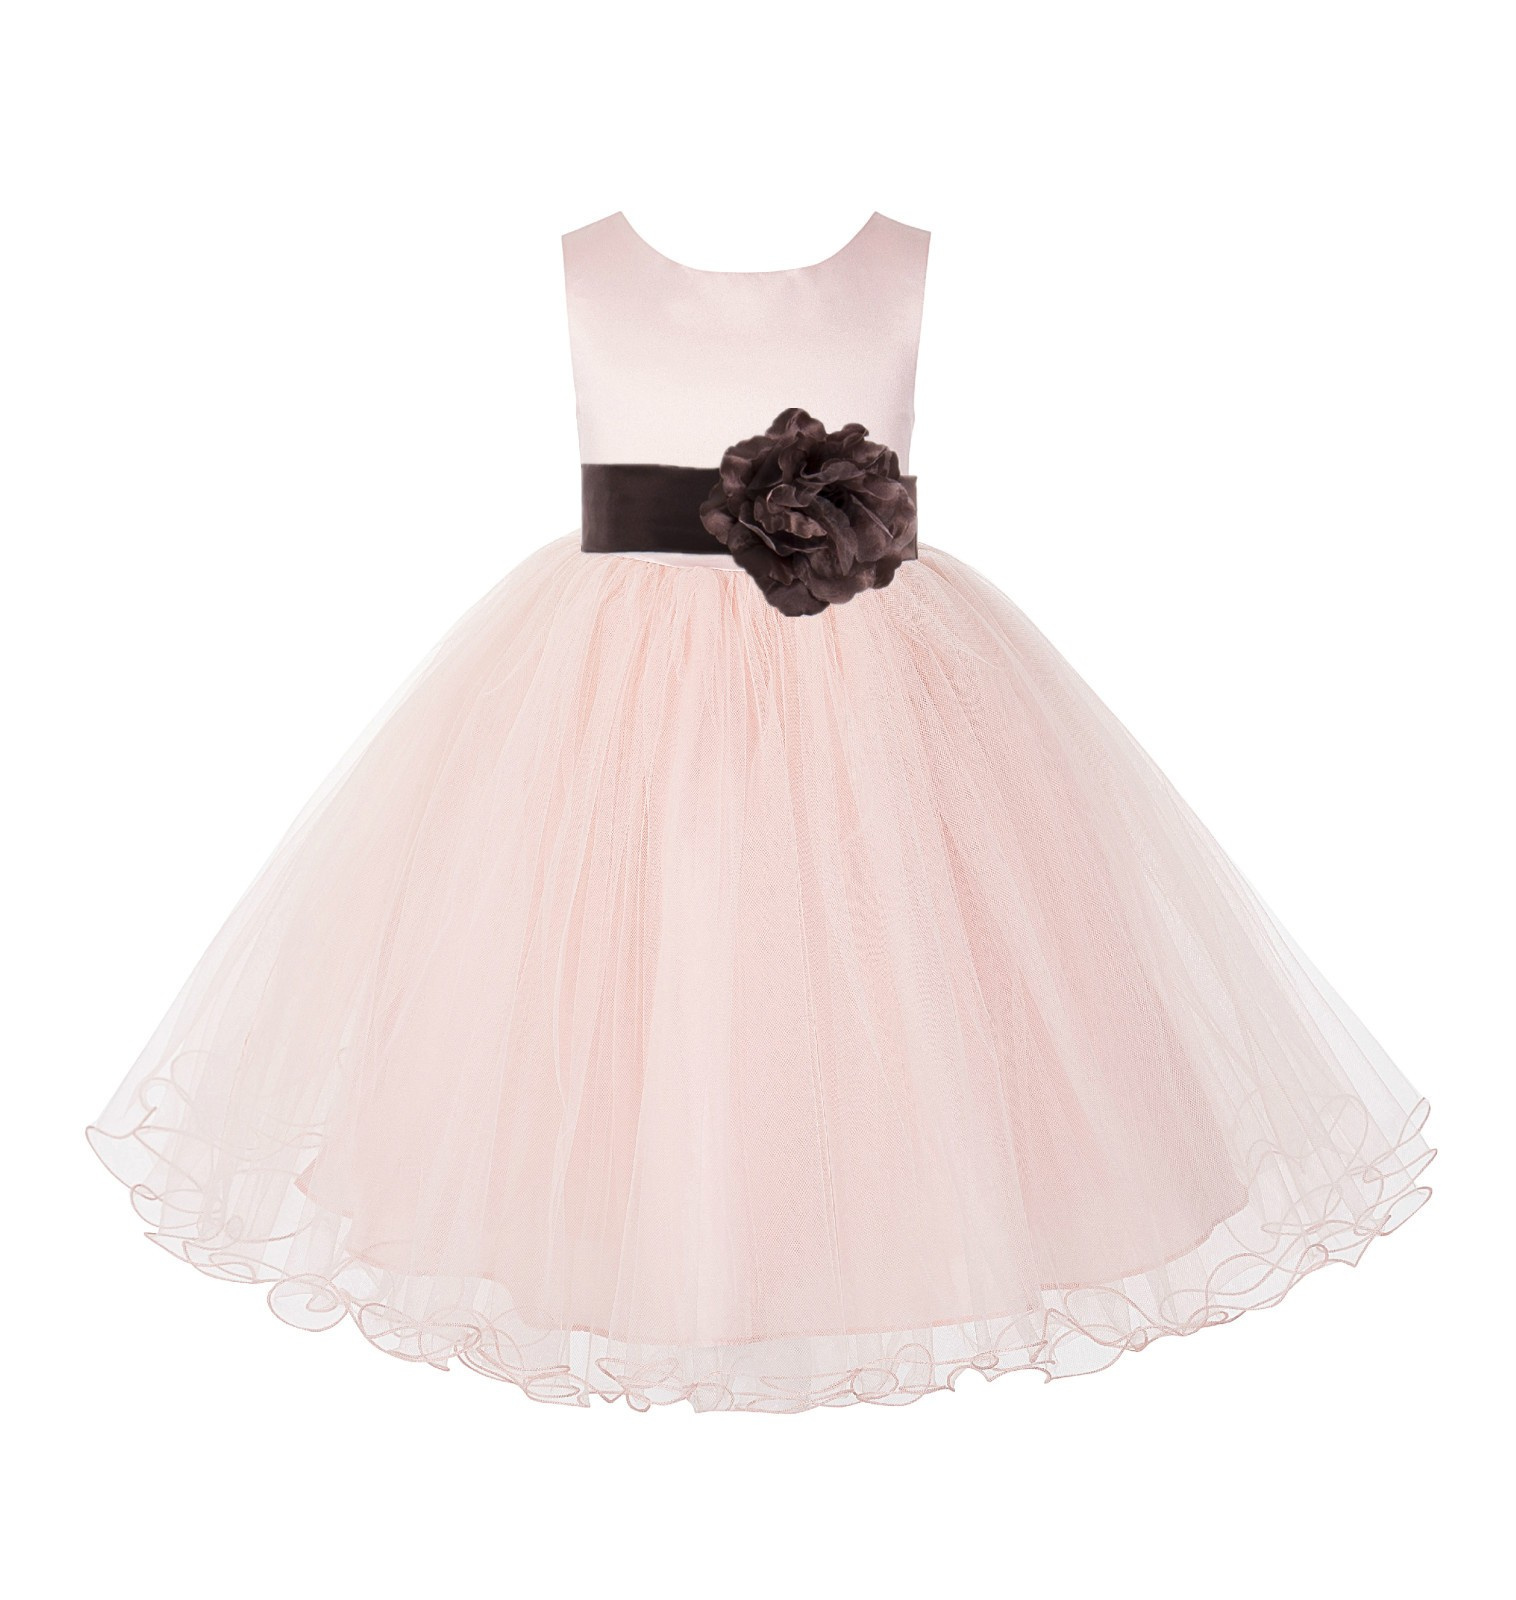 Blush Pink / Brown Tulle Rattail Edge Flower Girl Dress Pageant Recital 829S